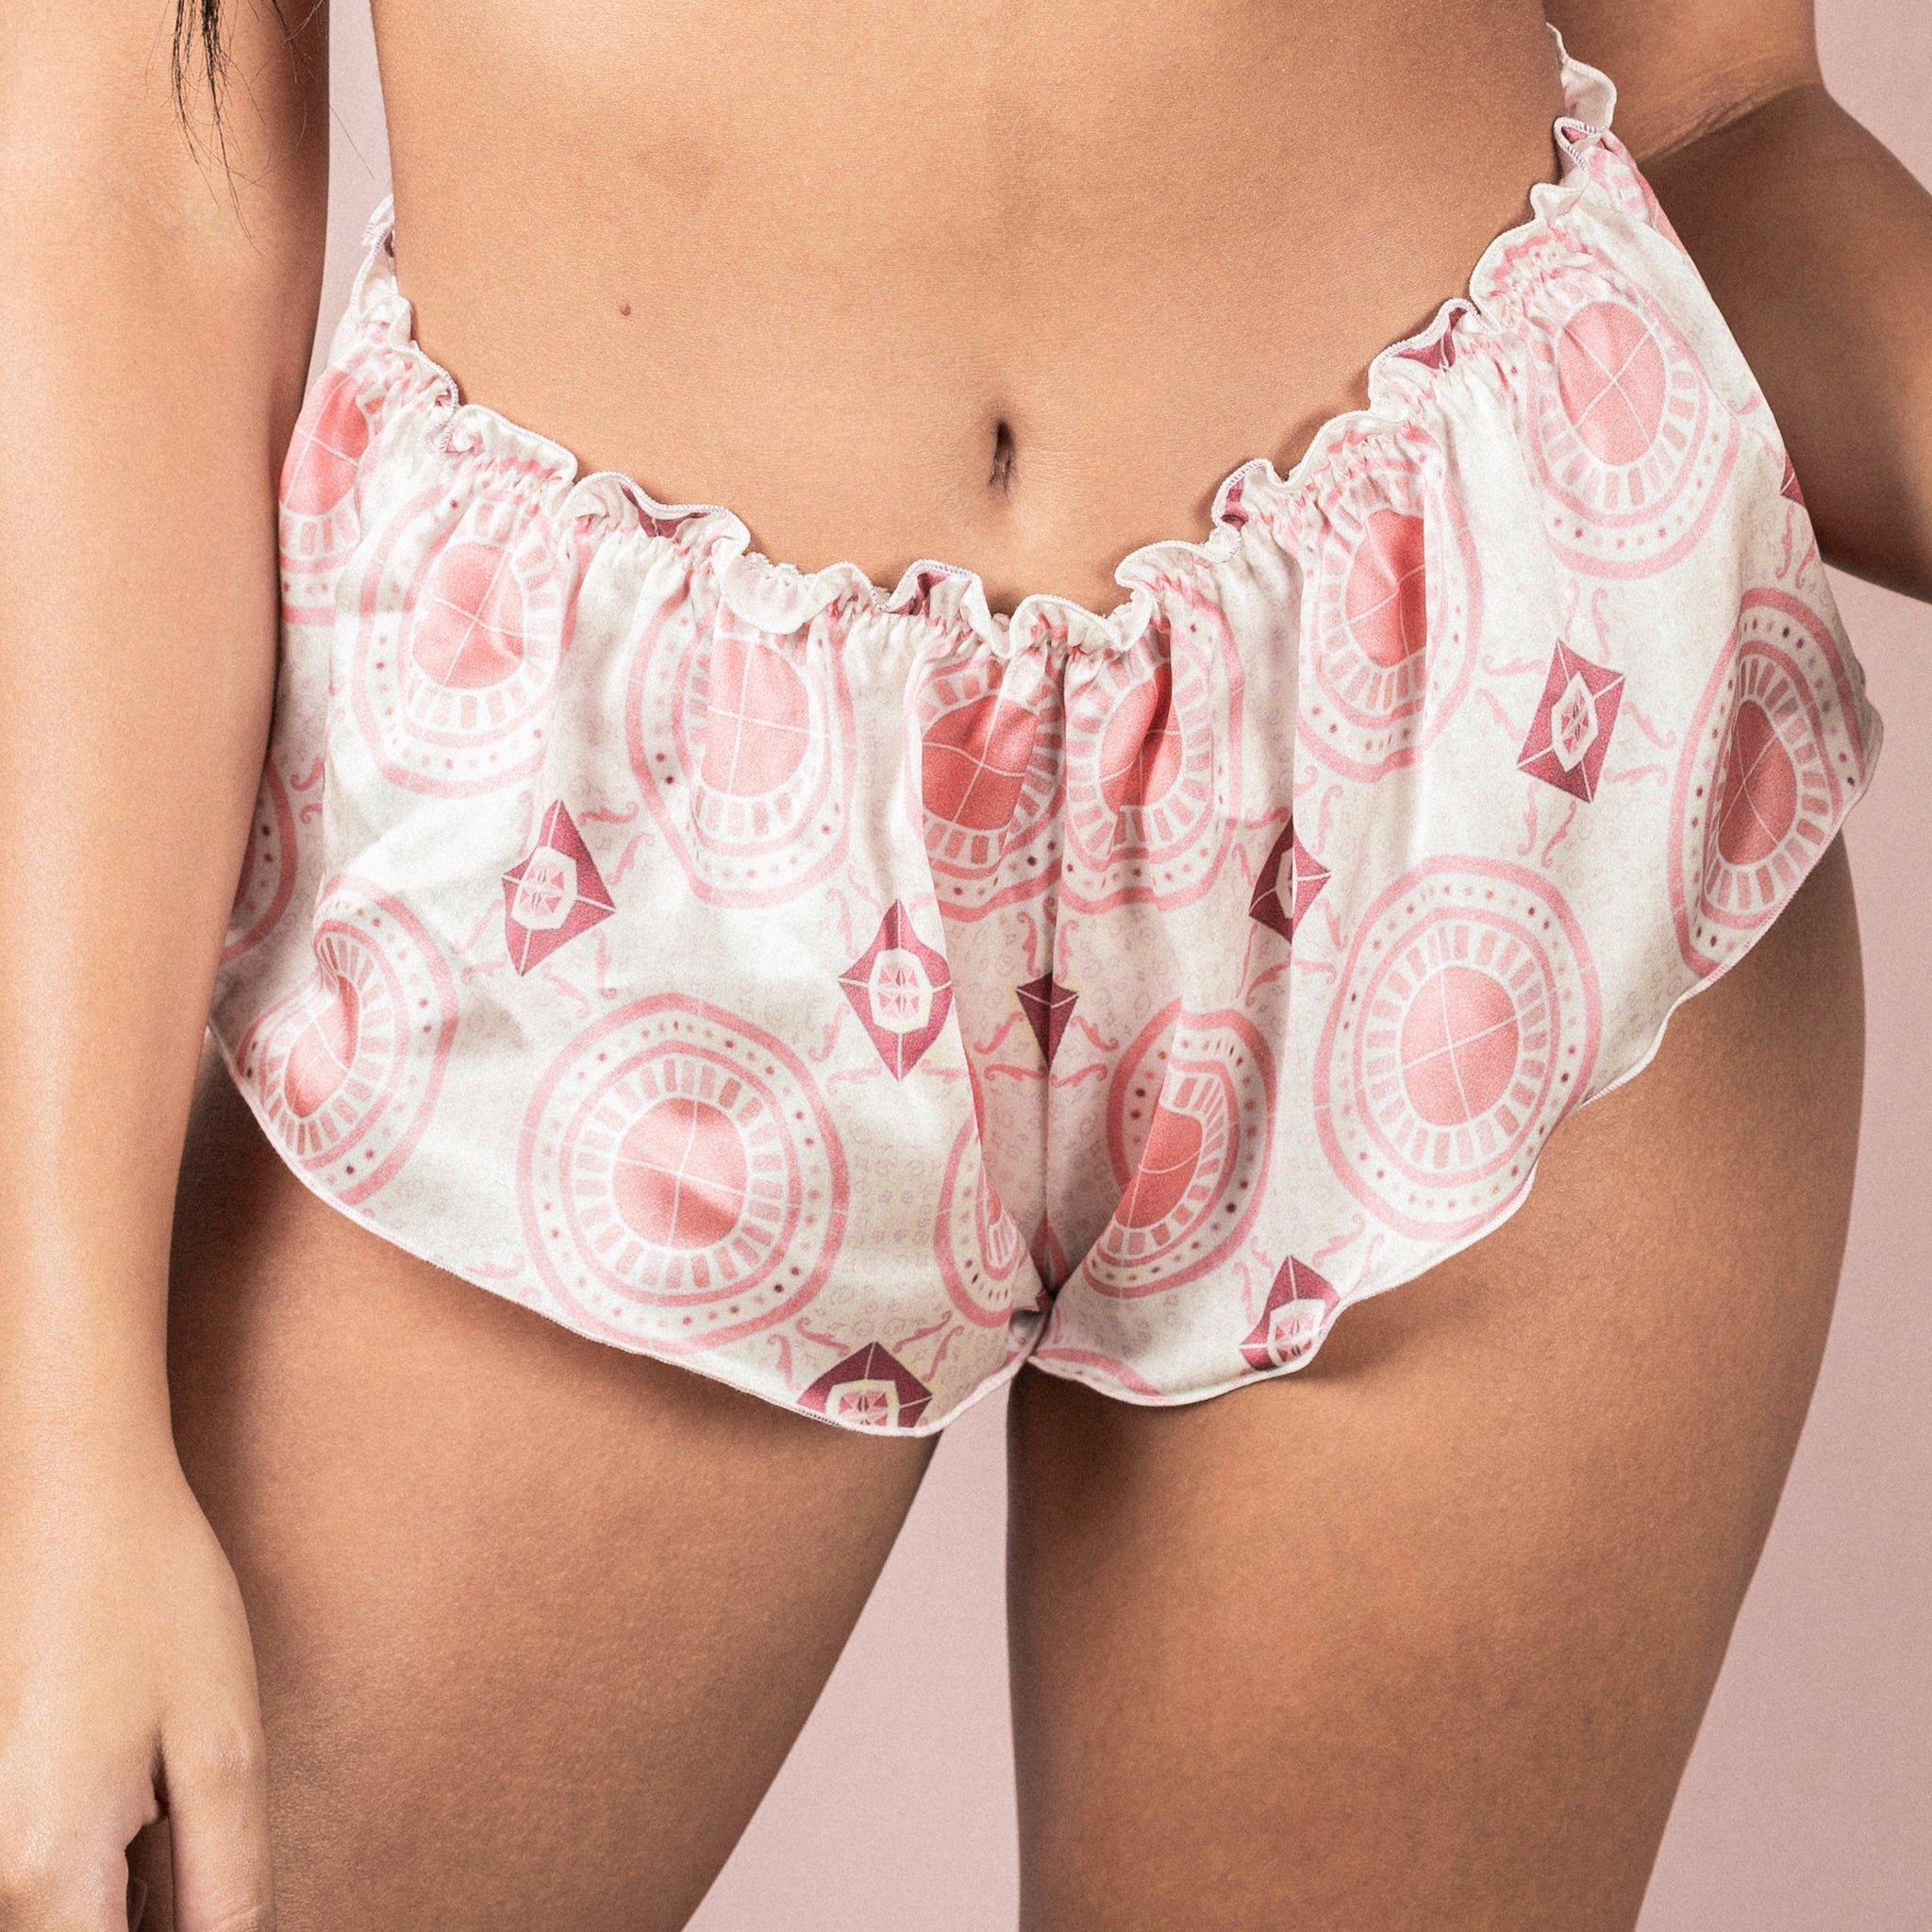 Studio Carragher x Desvalido | Classic Silk French Knicker - Pink Tile Print